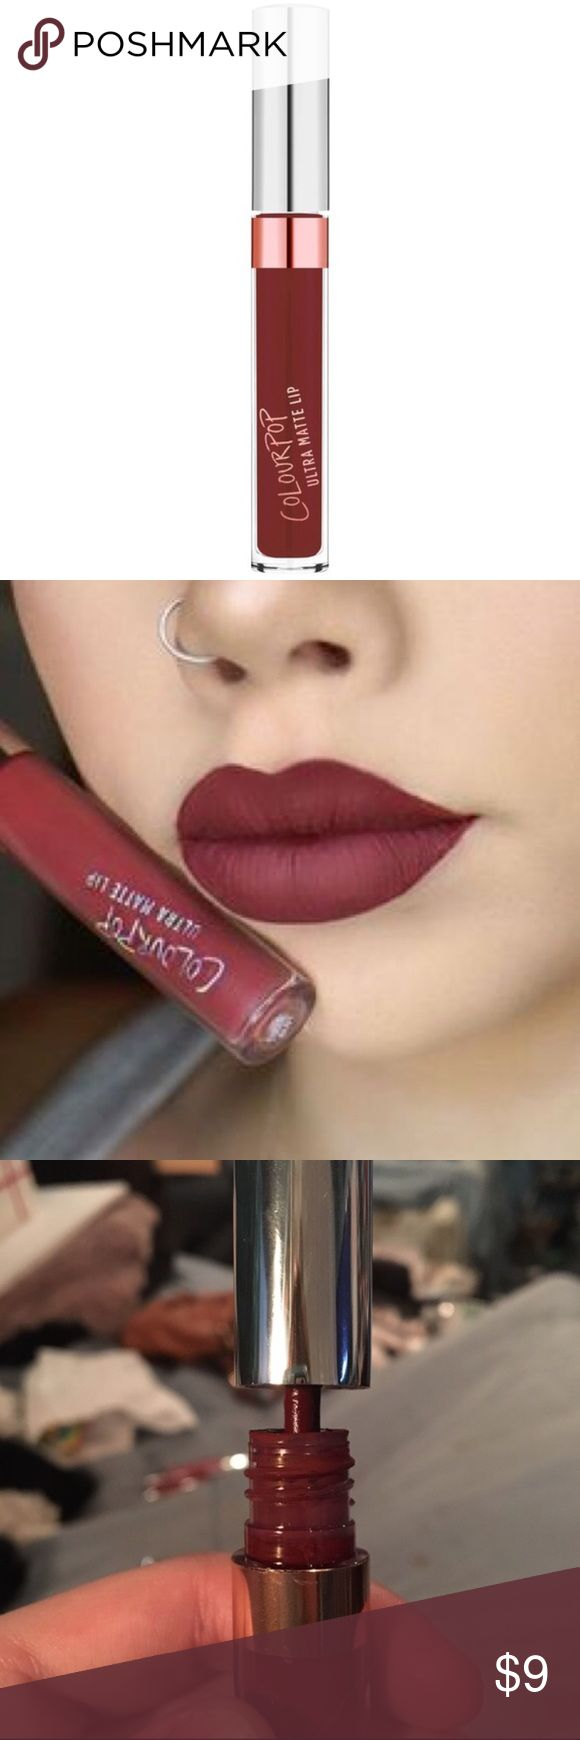 Colourpop   Rooch Ultra Matte Lip A deepened russet wine. Used 2X with a lip brush. No box included. Colourpop Makeup Lipstick